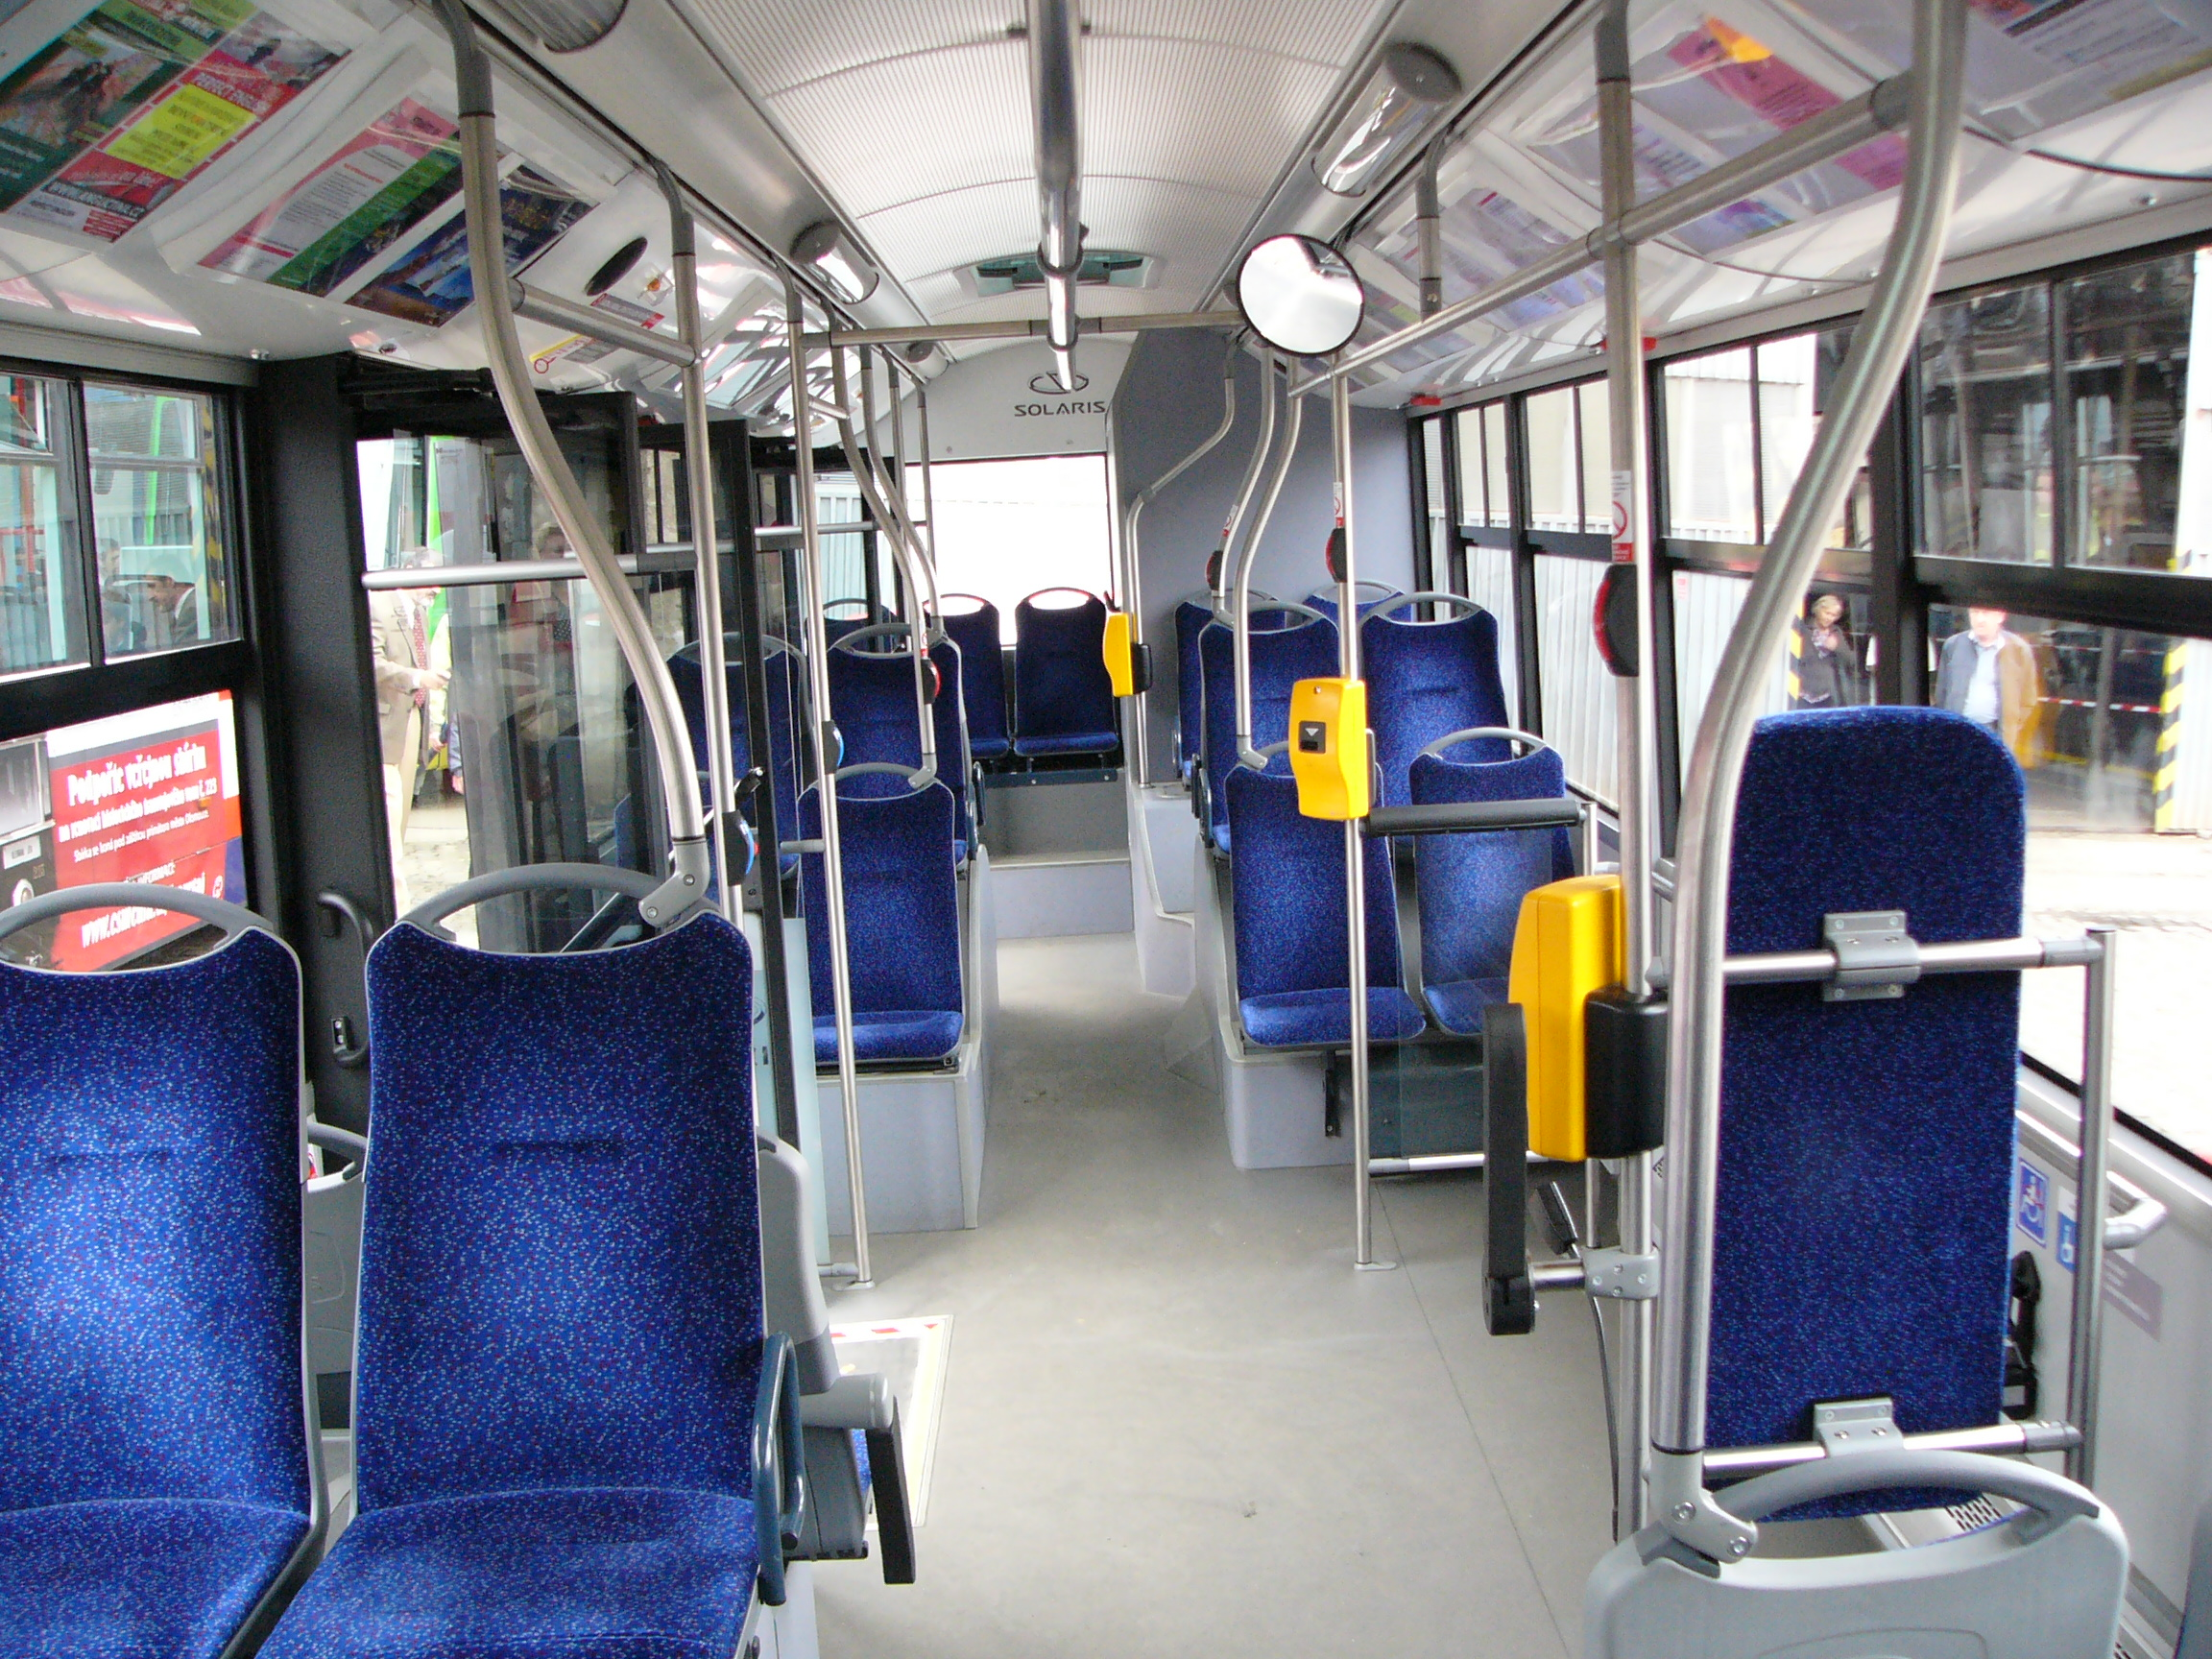 File:Solaris Urbino 12 interior.jpg - Wikimedia Commons